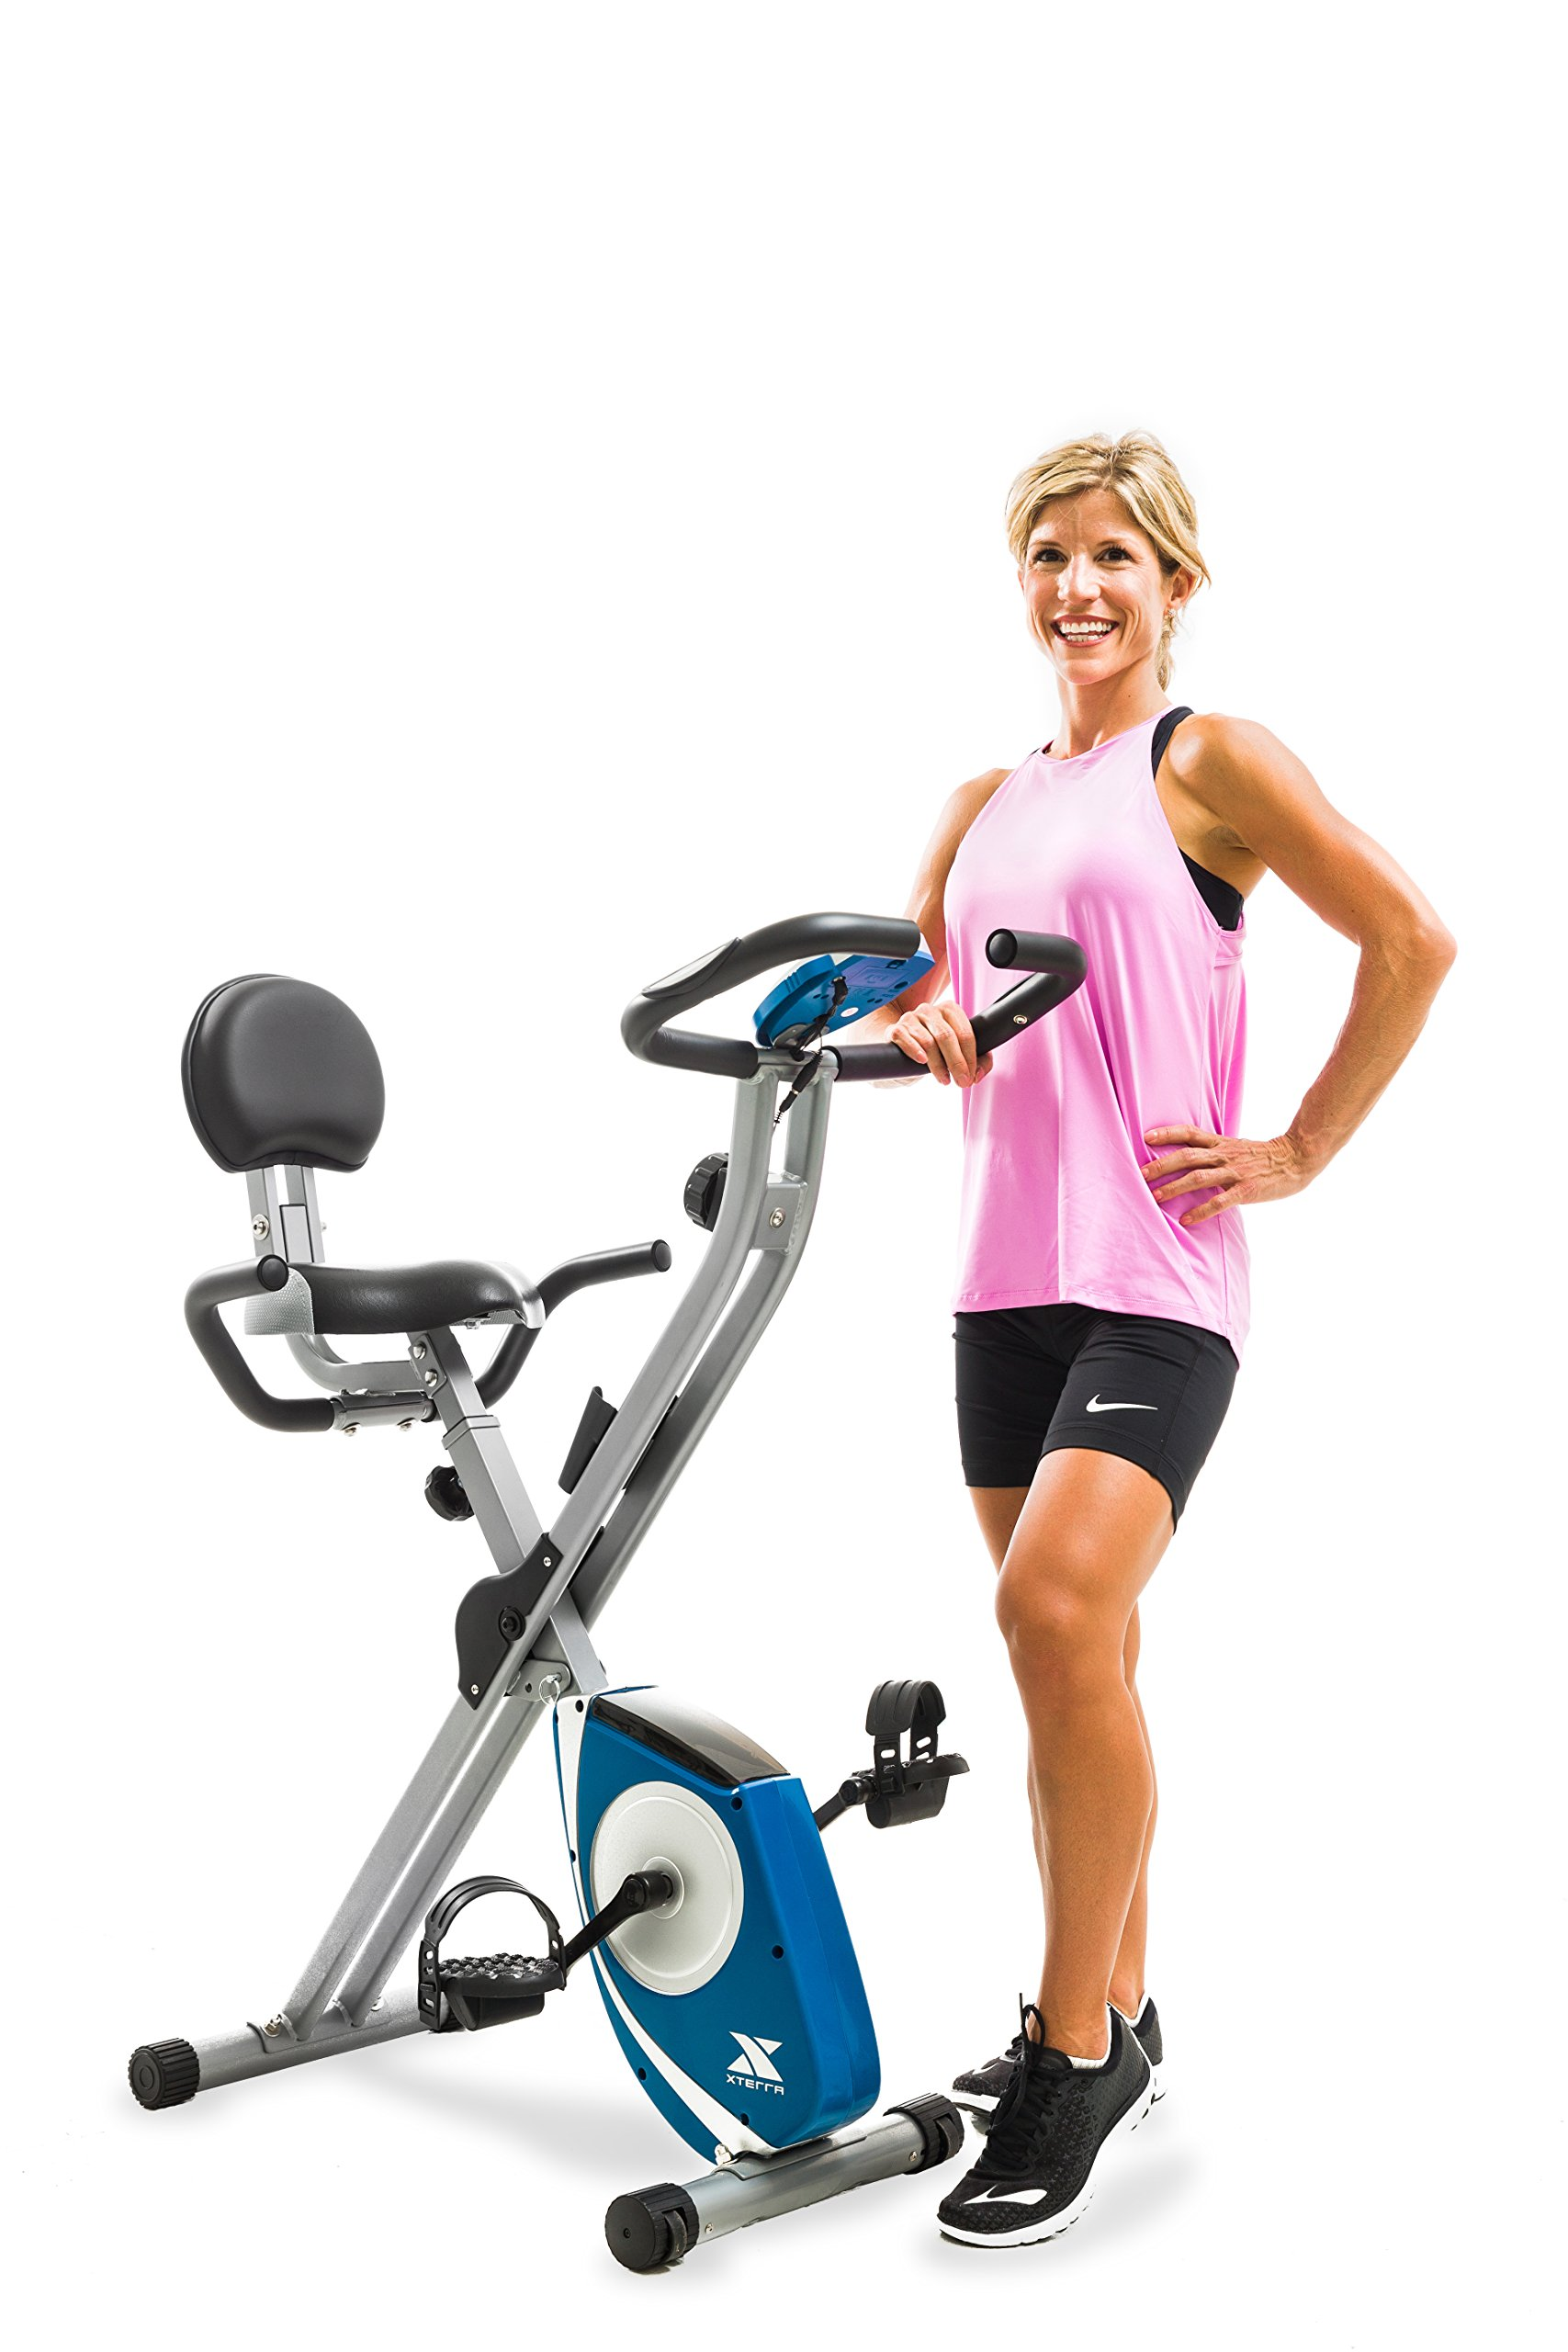 XTERRA Fitness FB350 Folding Exercise Bike, Silver by XTERRA Fitness (Image #11)